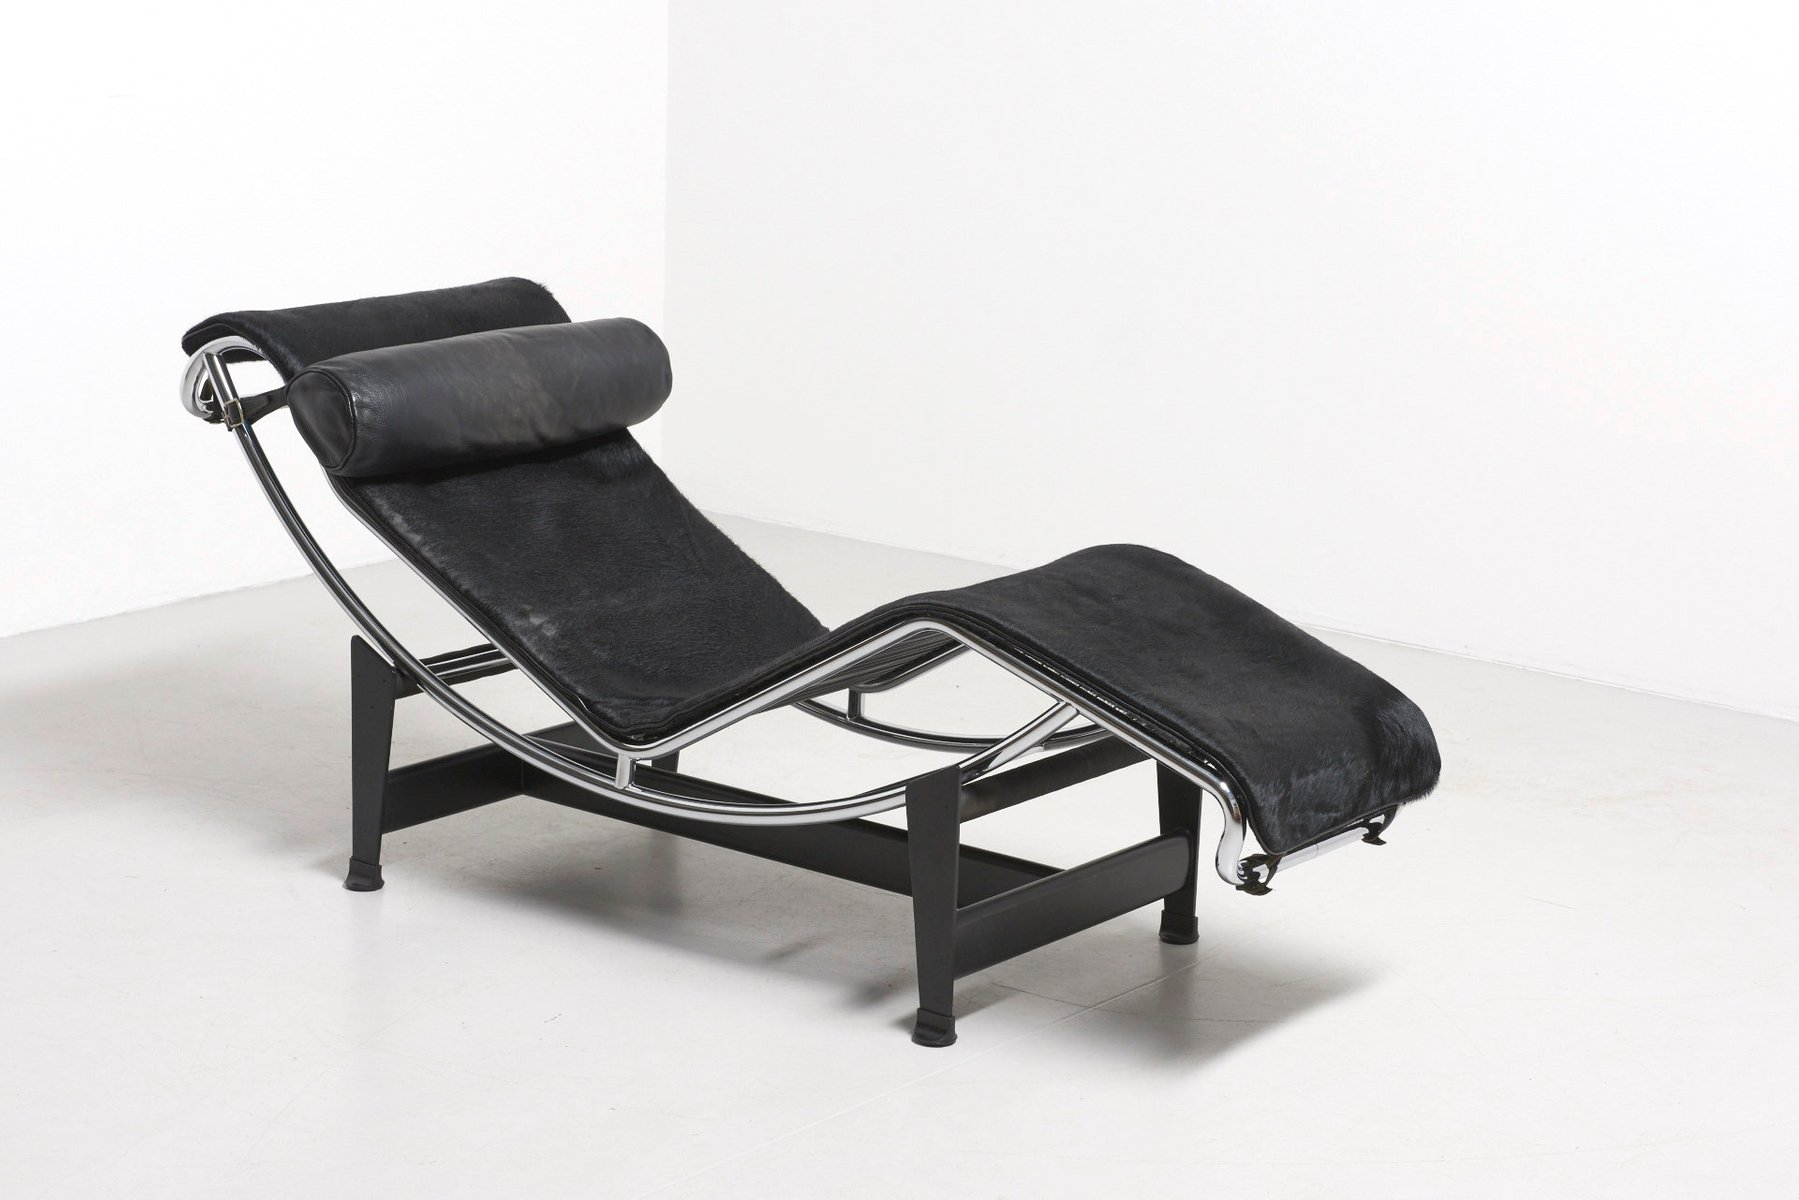 Vintage lc4 chaise lounge by le corbusier for cassina for for Chaise lounge cassina